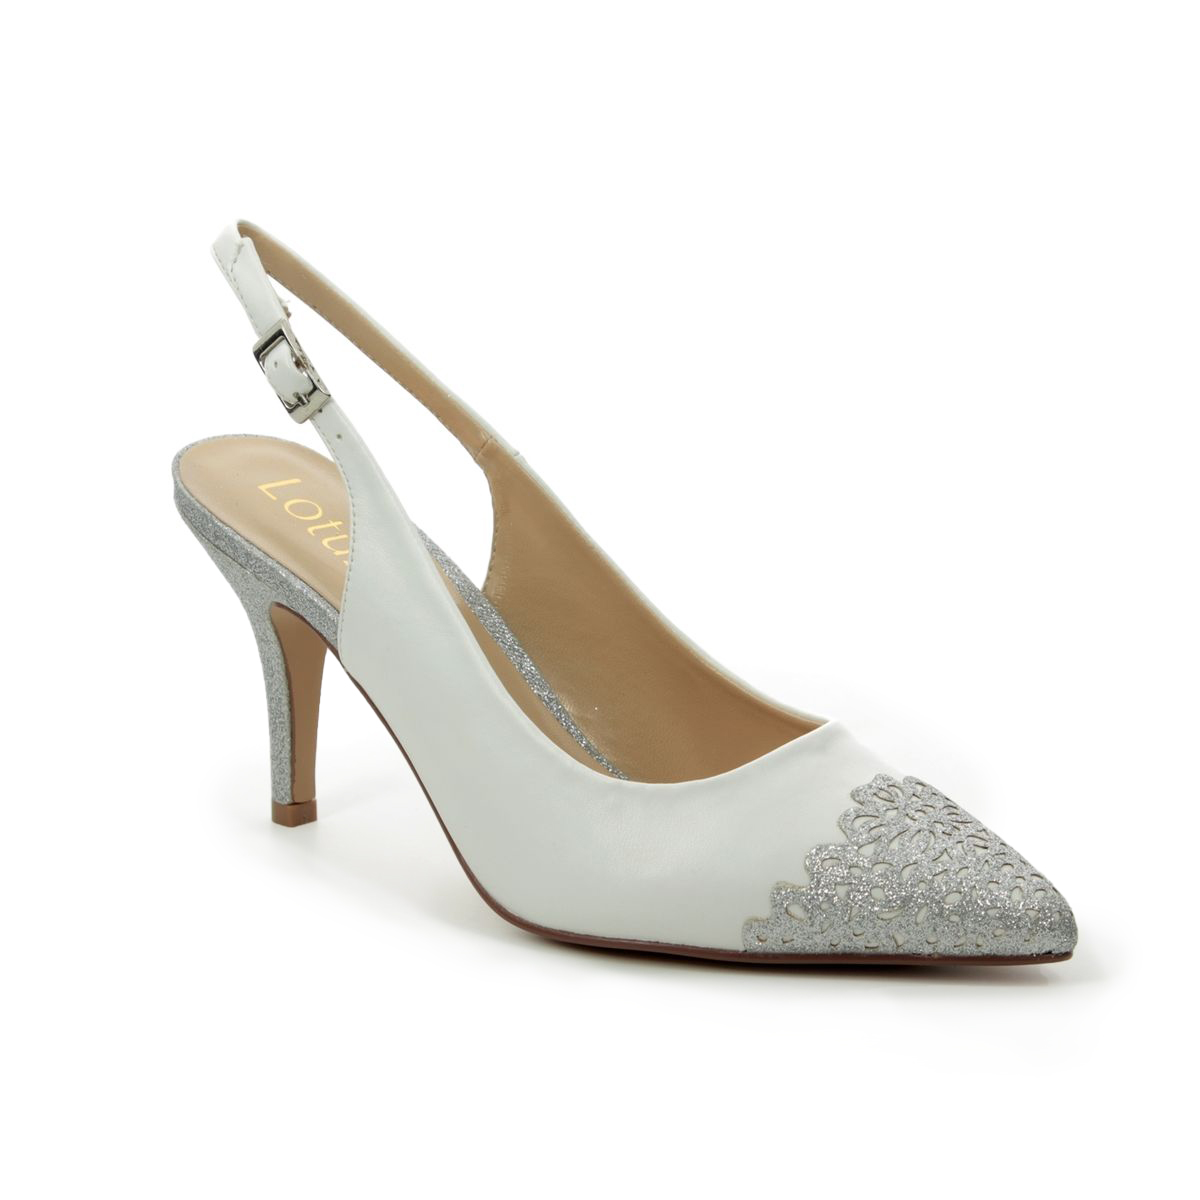 7a5216a16 Lotus High-heeled Shoes - White multi - ULS078/66 ARLIND